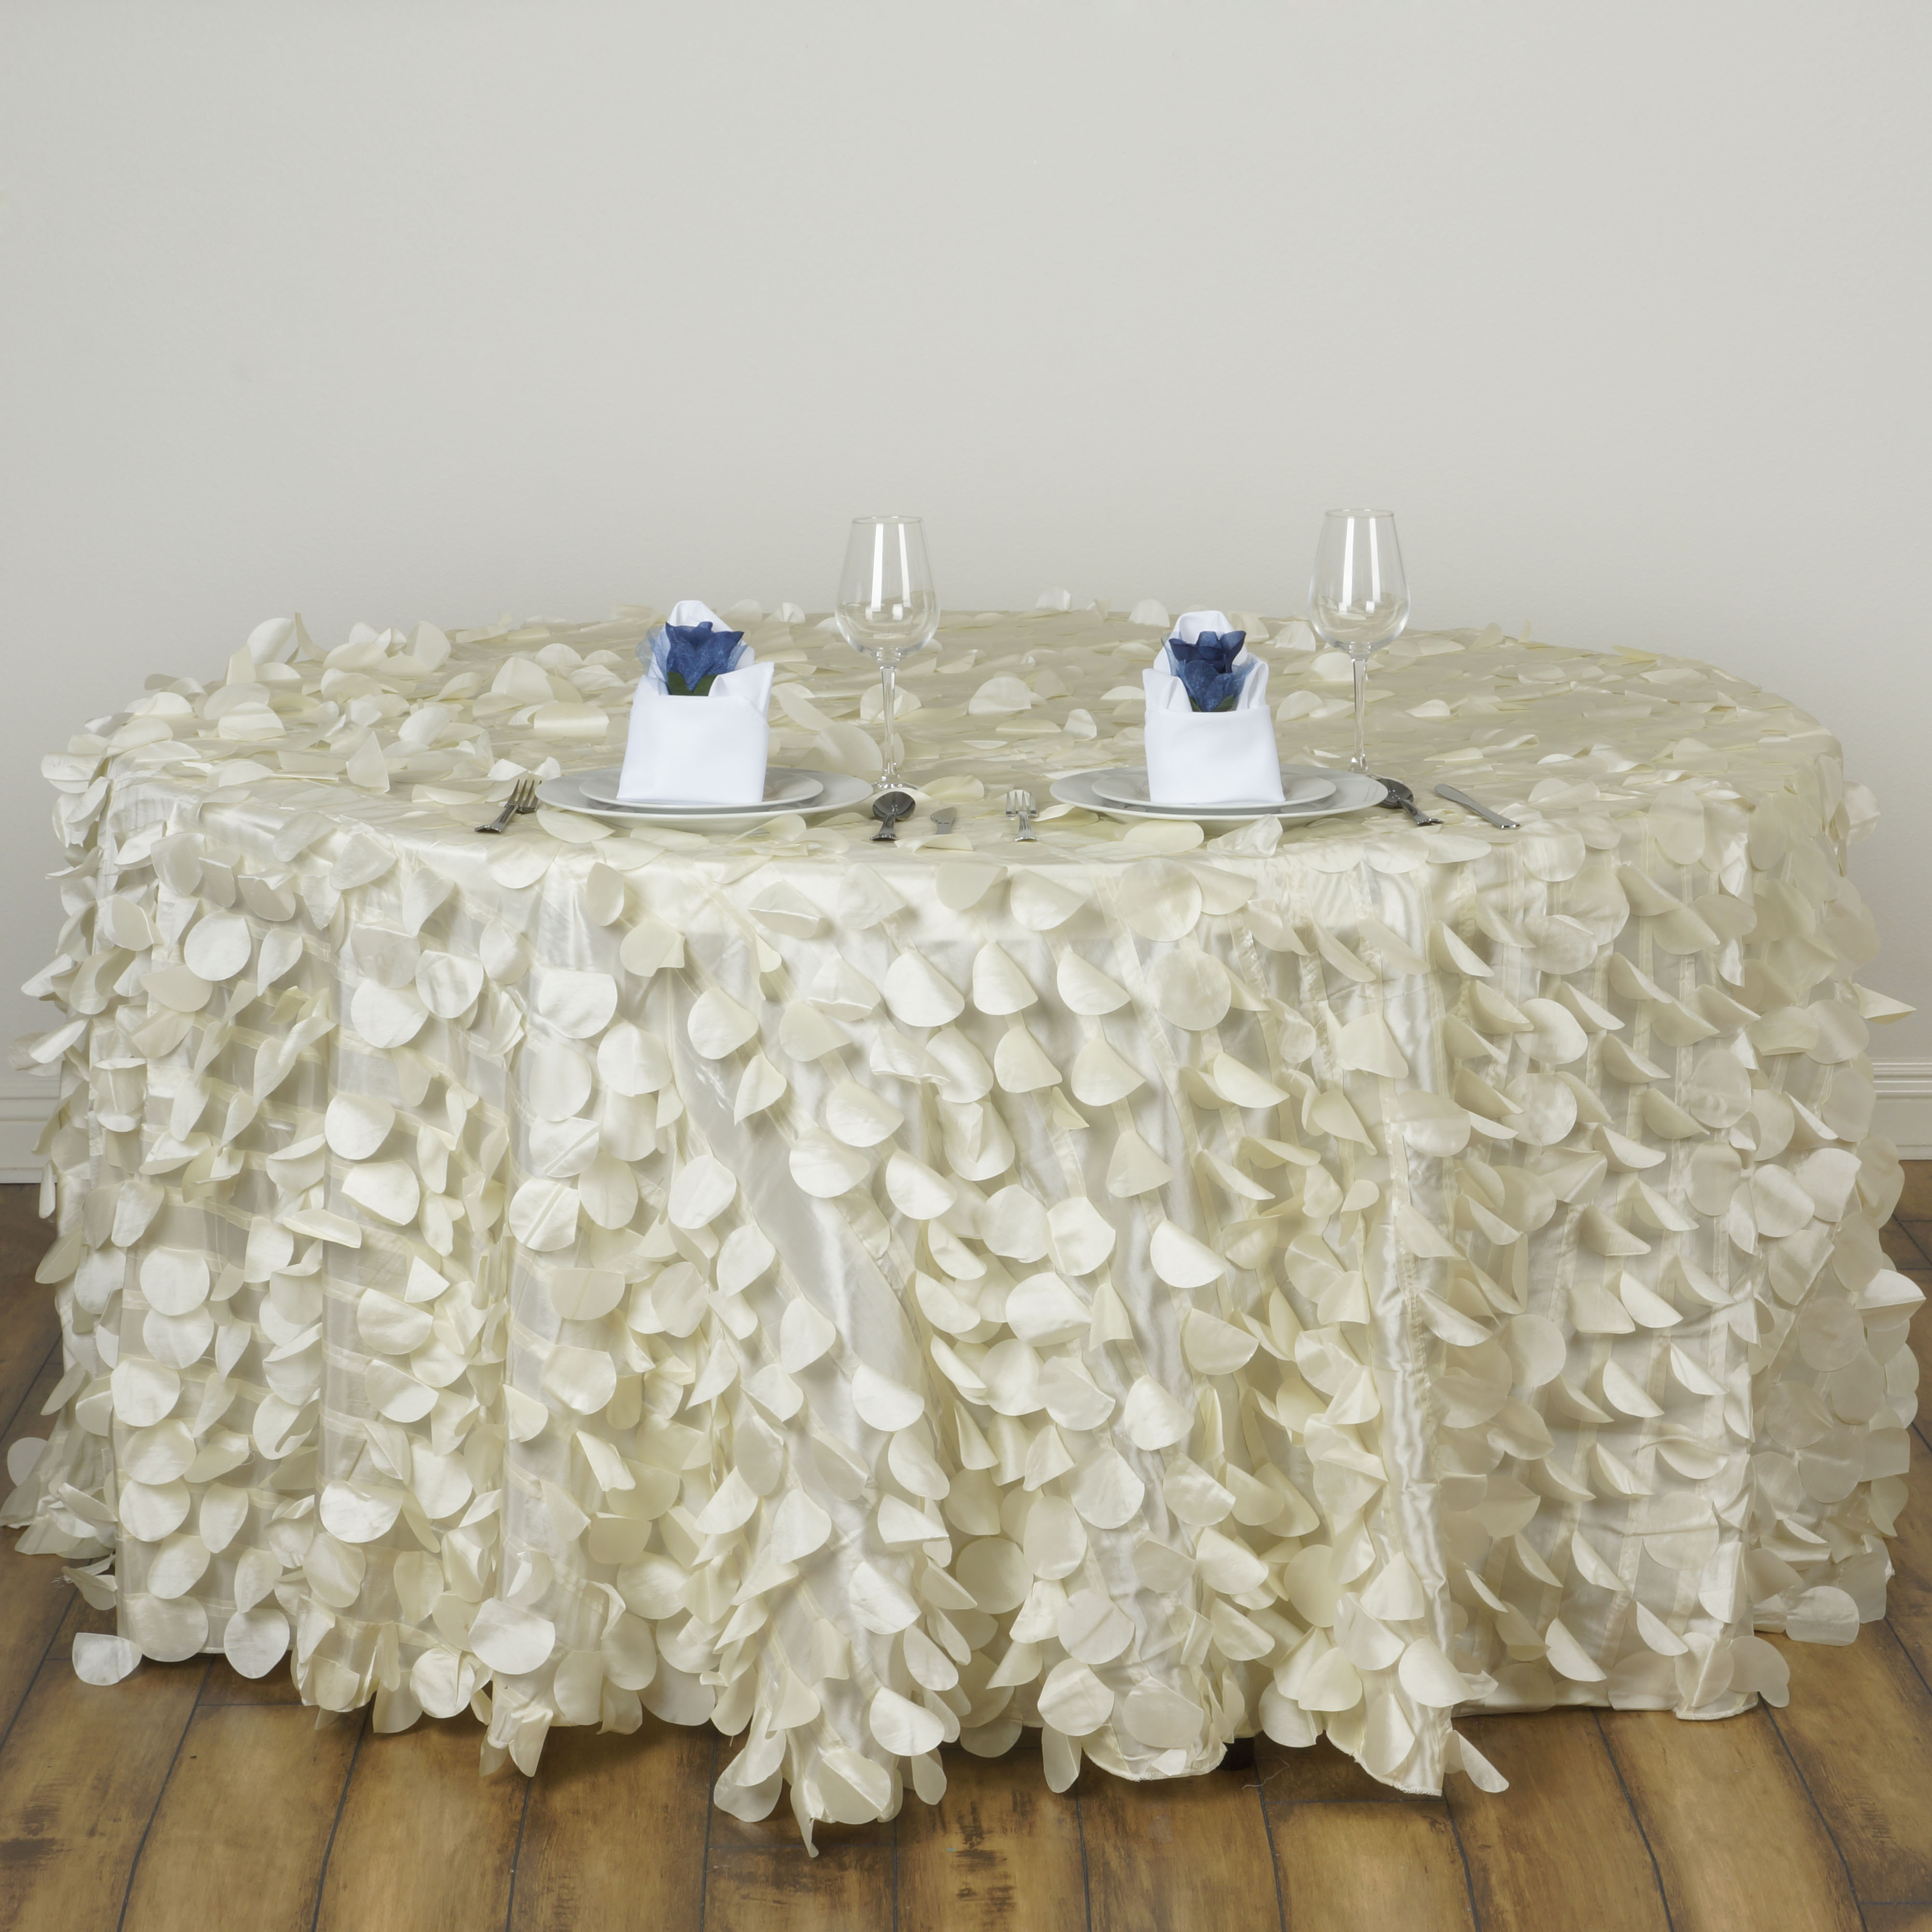 Where to Buy Tablecloths for Party